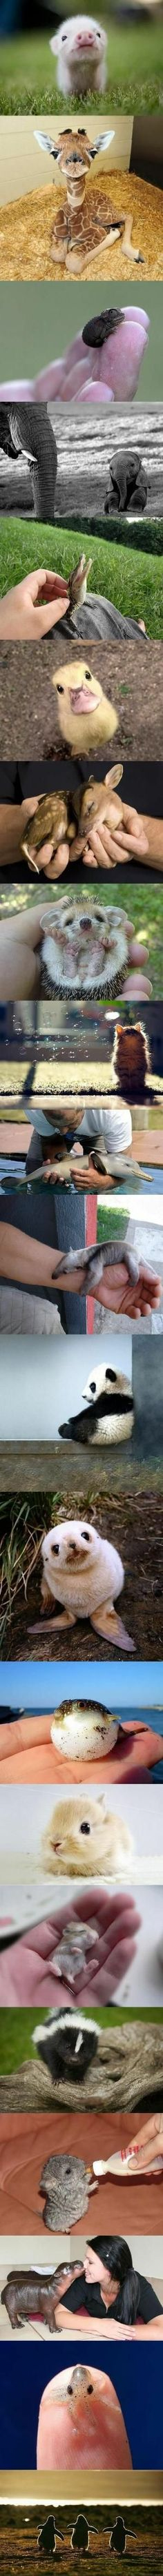 baby animals~cute and sweet!